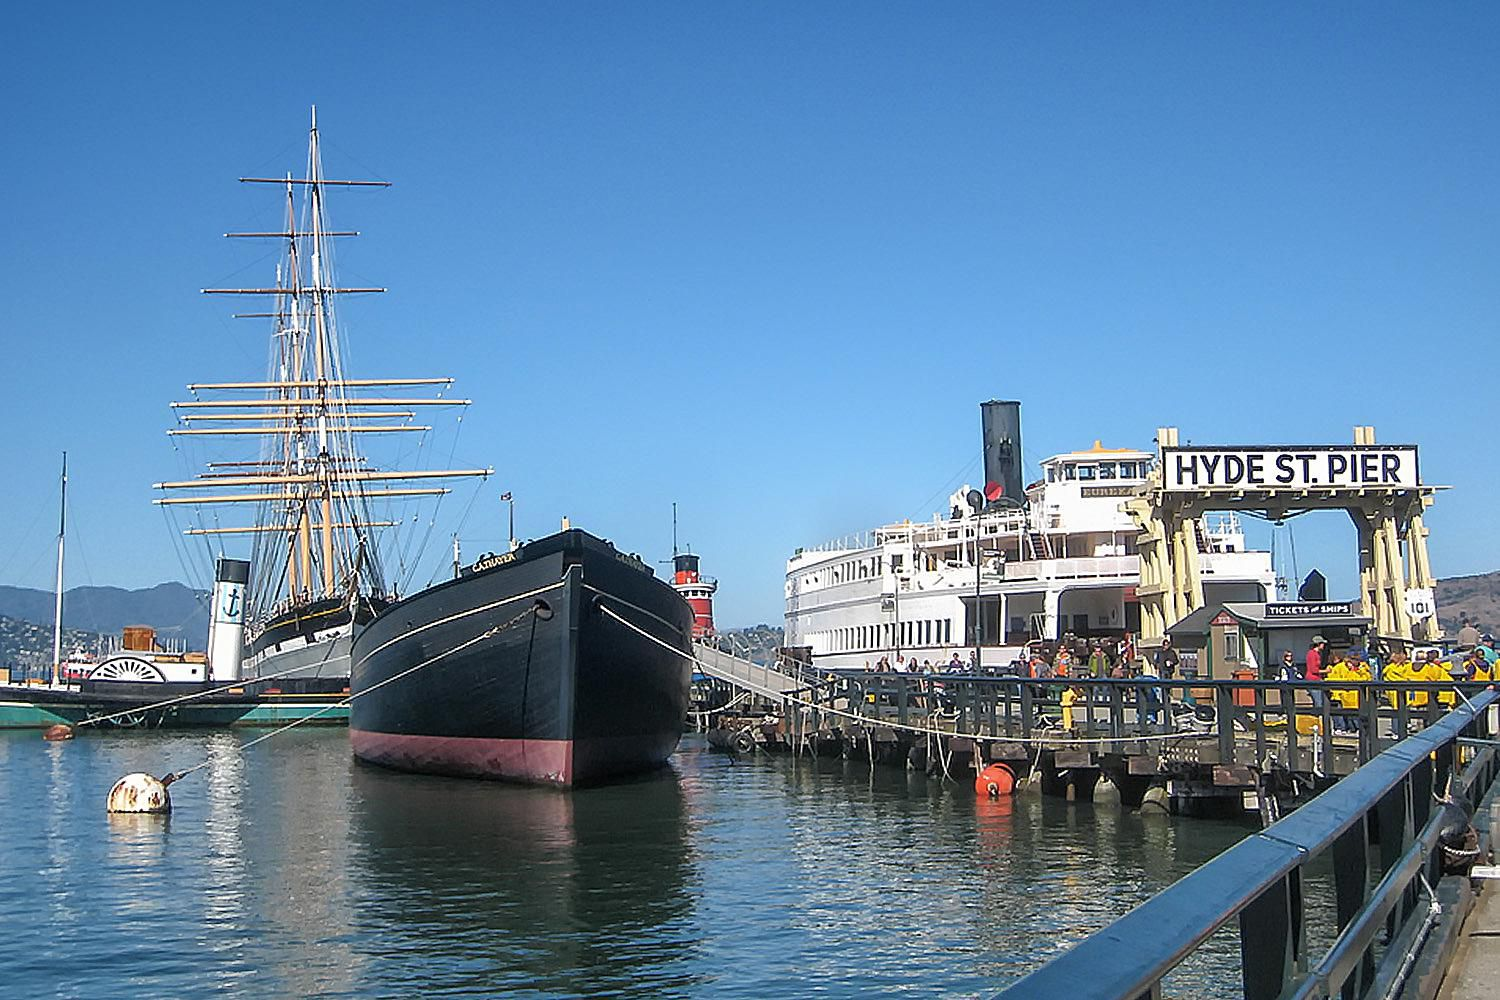 Fishermans Wharf In San Francisco California Photo Gallery Parts Of A Tall Ship For Pinterest